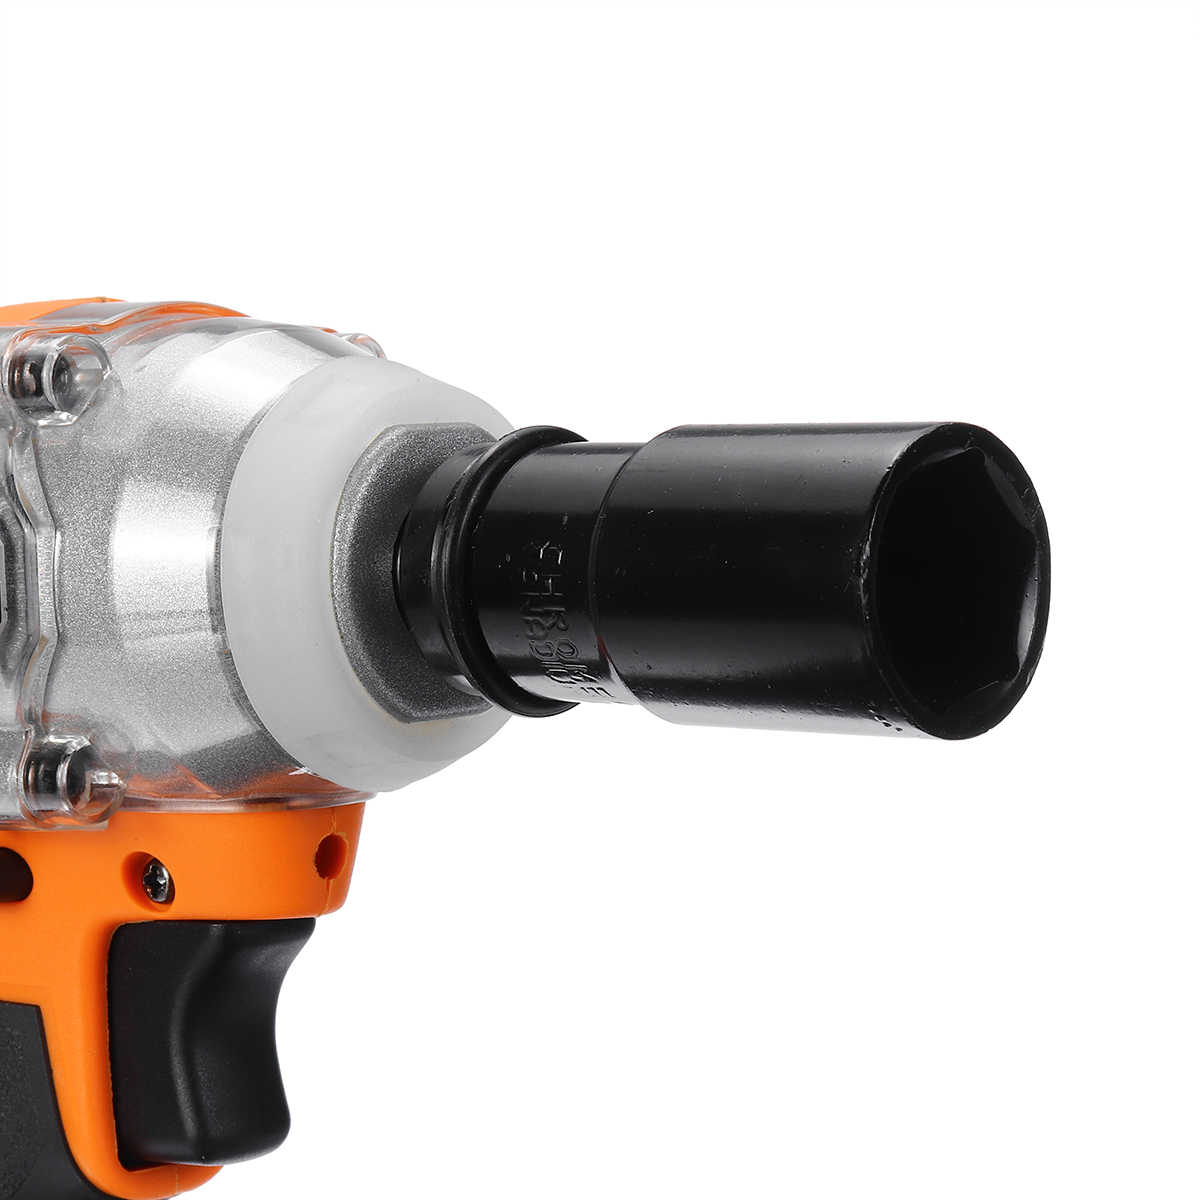 """18V Brushless Cordless Impact Electric Wrench 520 N.m Torque 1/2"""" Socket Wrench Power Tool for Household Car Wheel"""